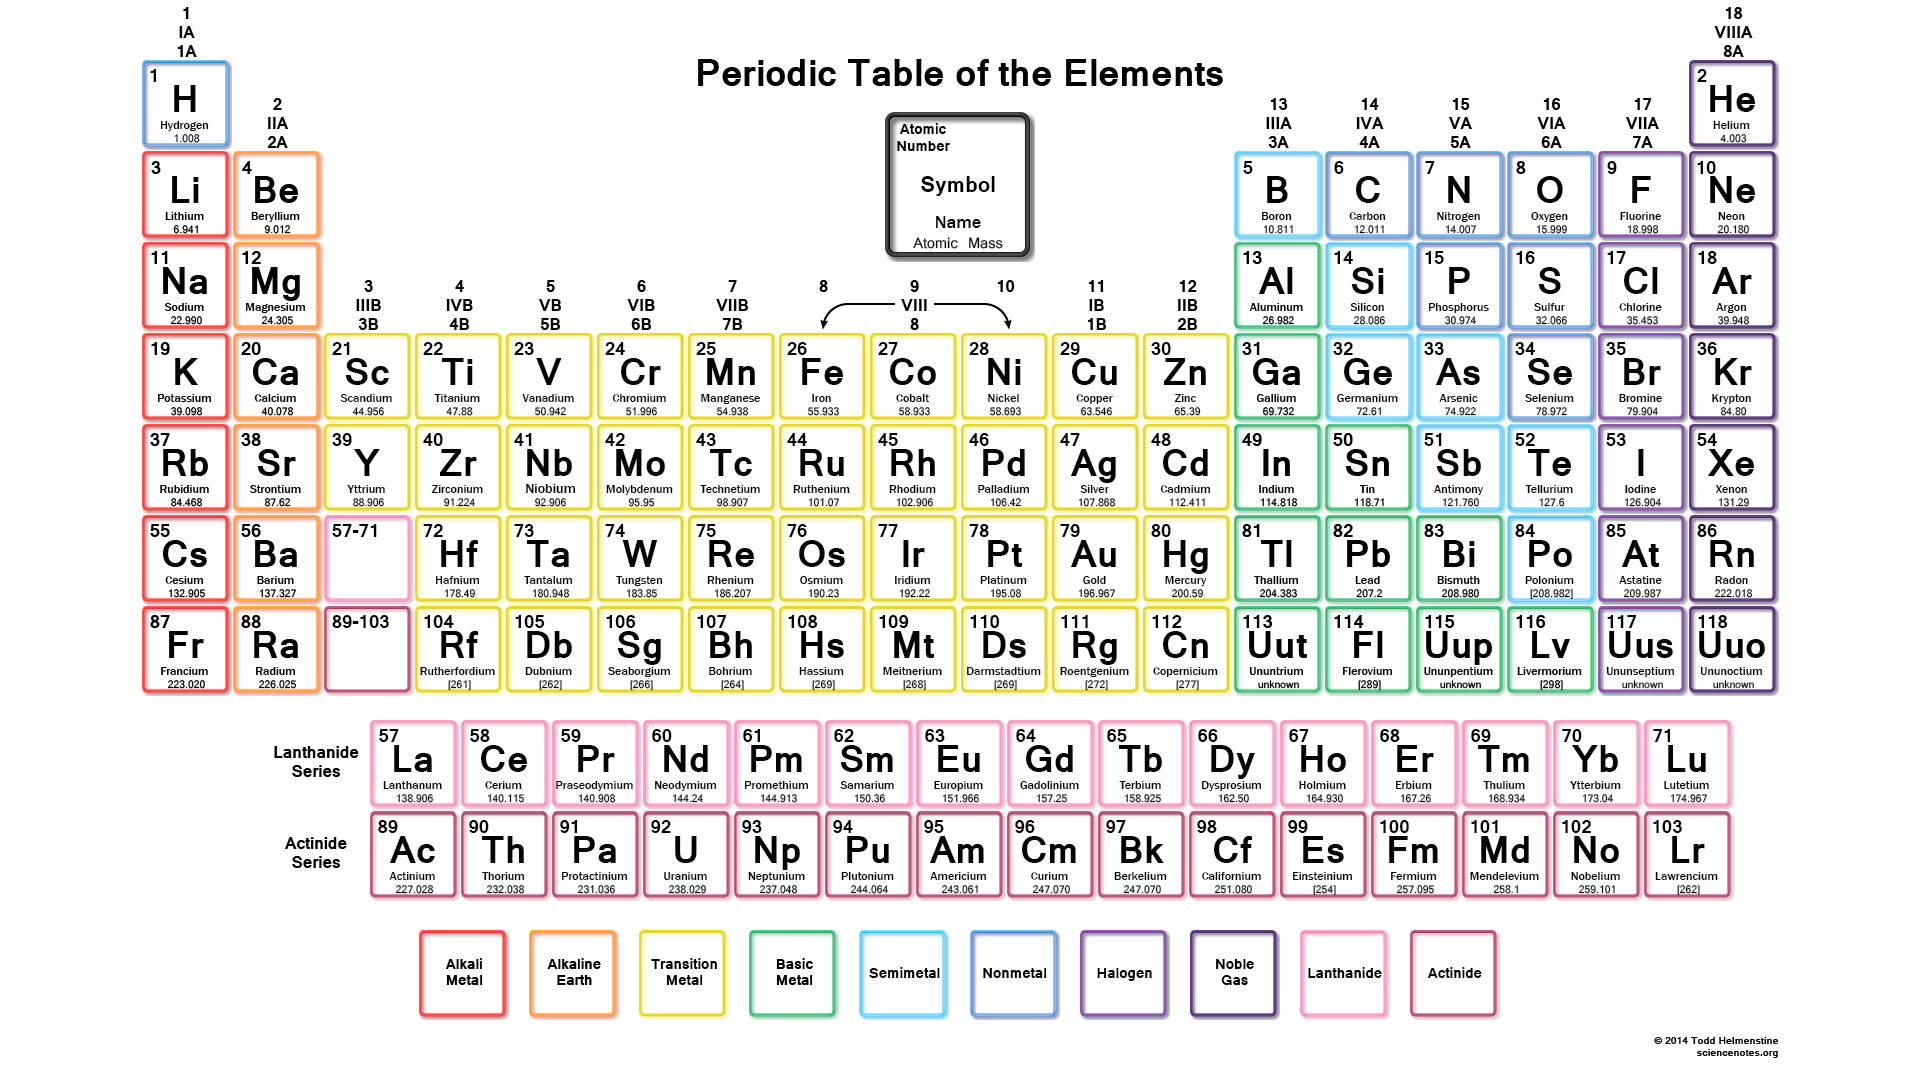 Printable periodic table of elements selol ink printable periodic table of elements urtaz